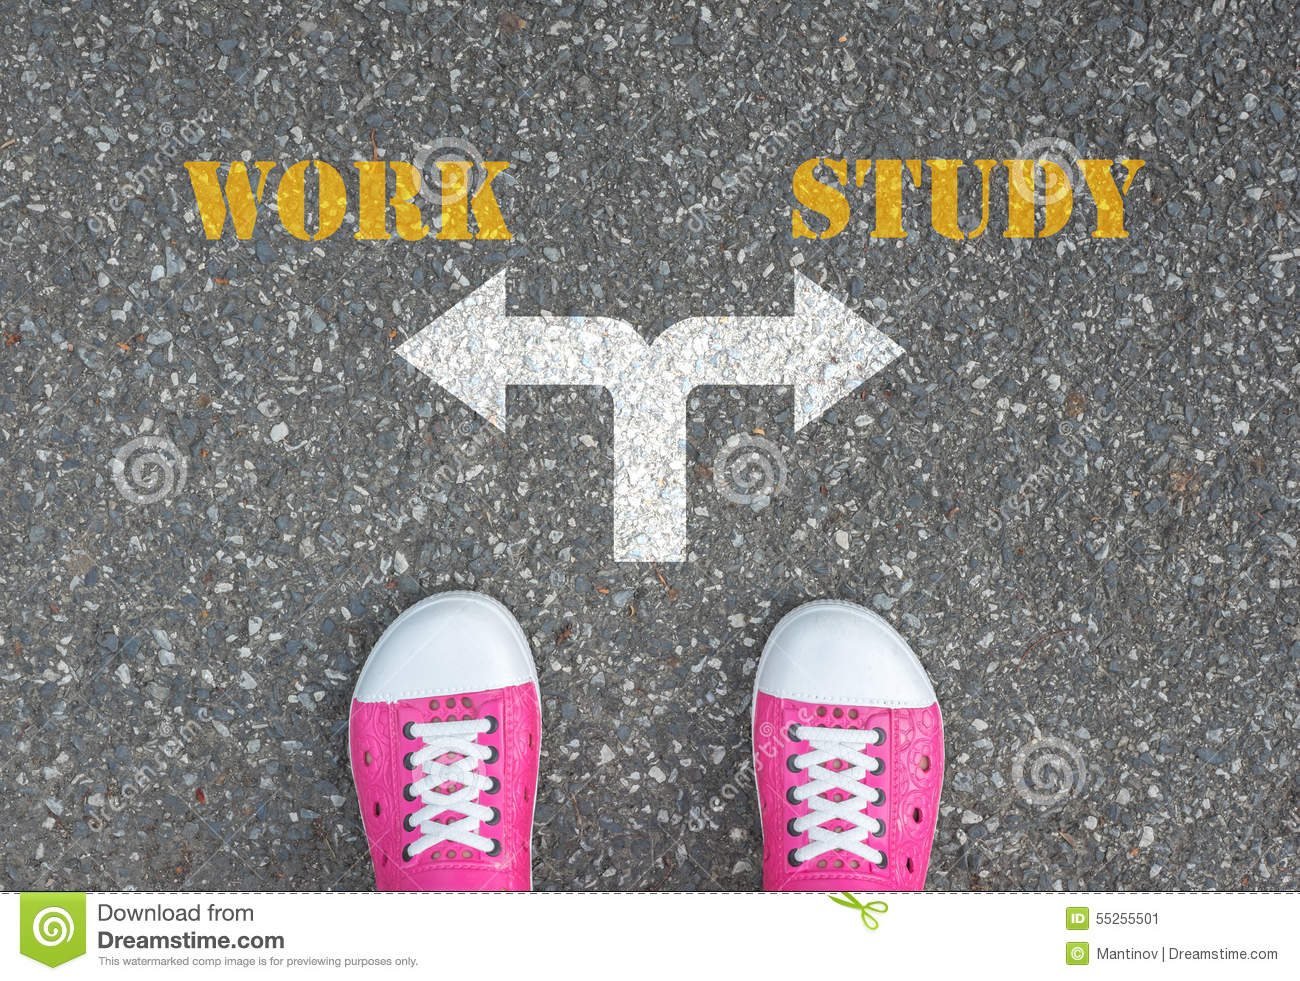 5 Ways to Work and Study at the Same Time - wikiHow